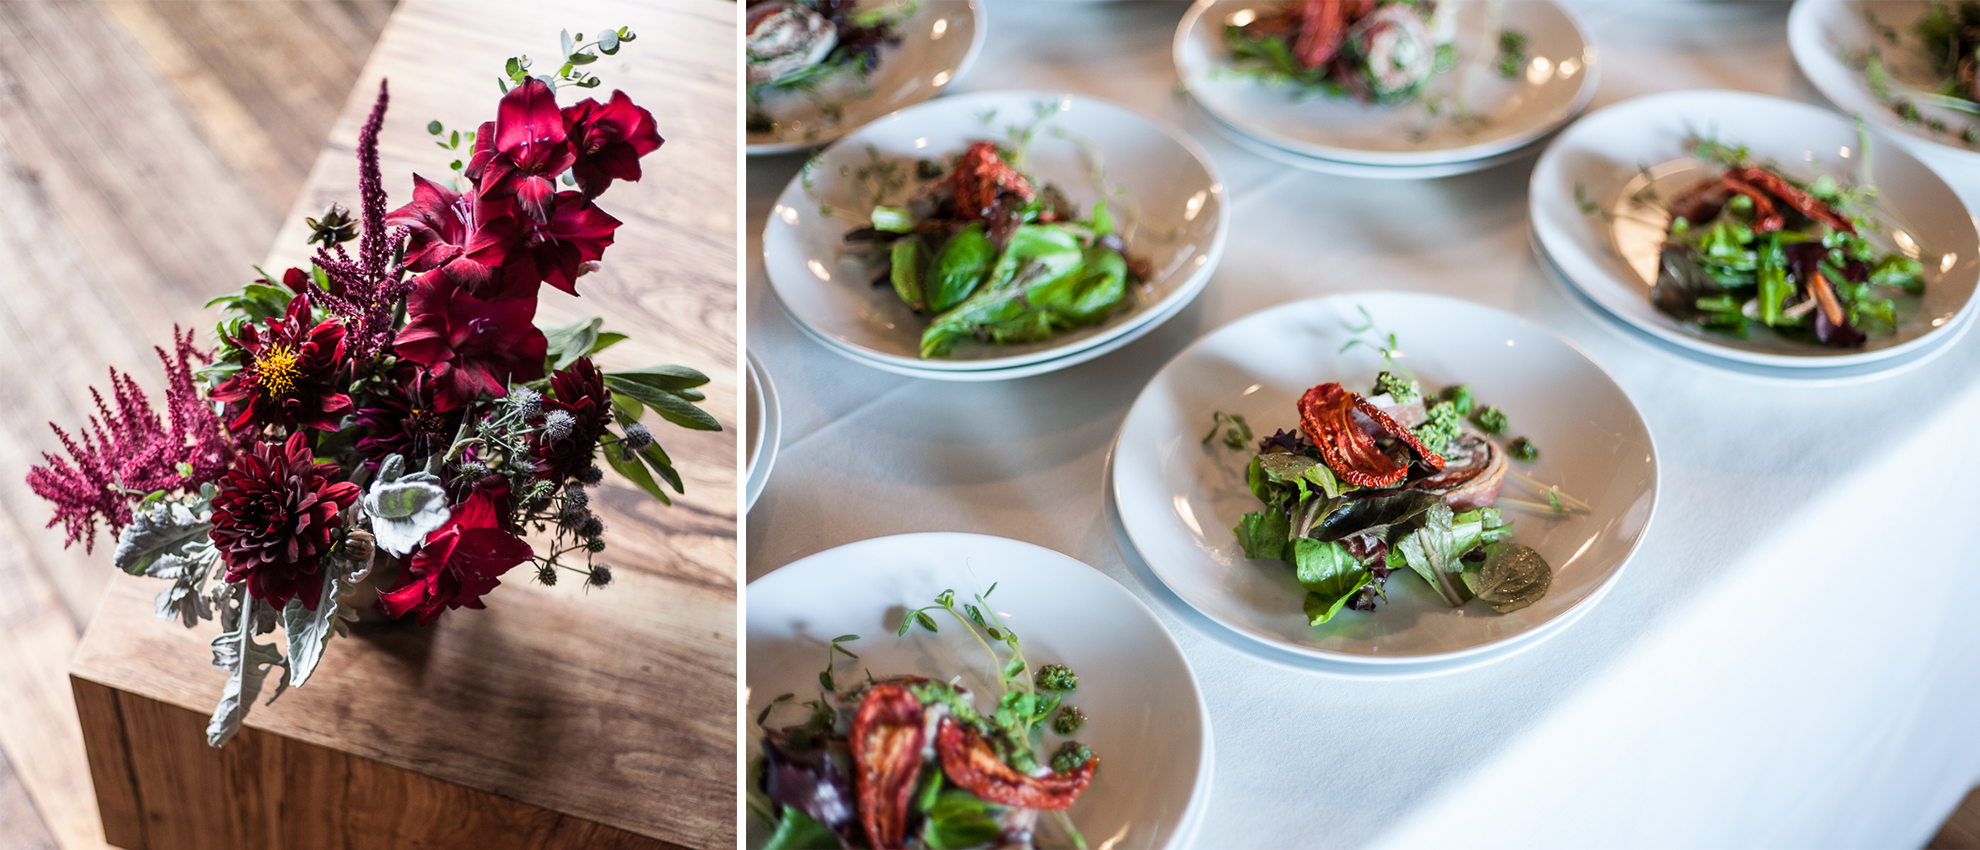 On the left, a bouquet of flowers. On the right, plates lined up with salads on top.